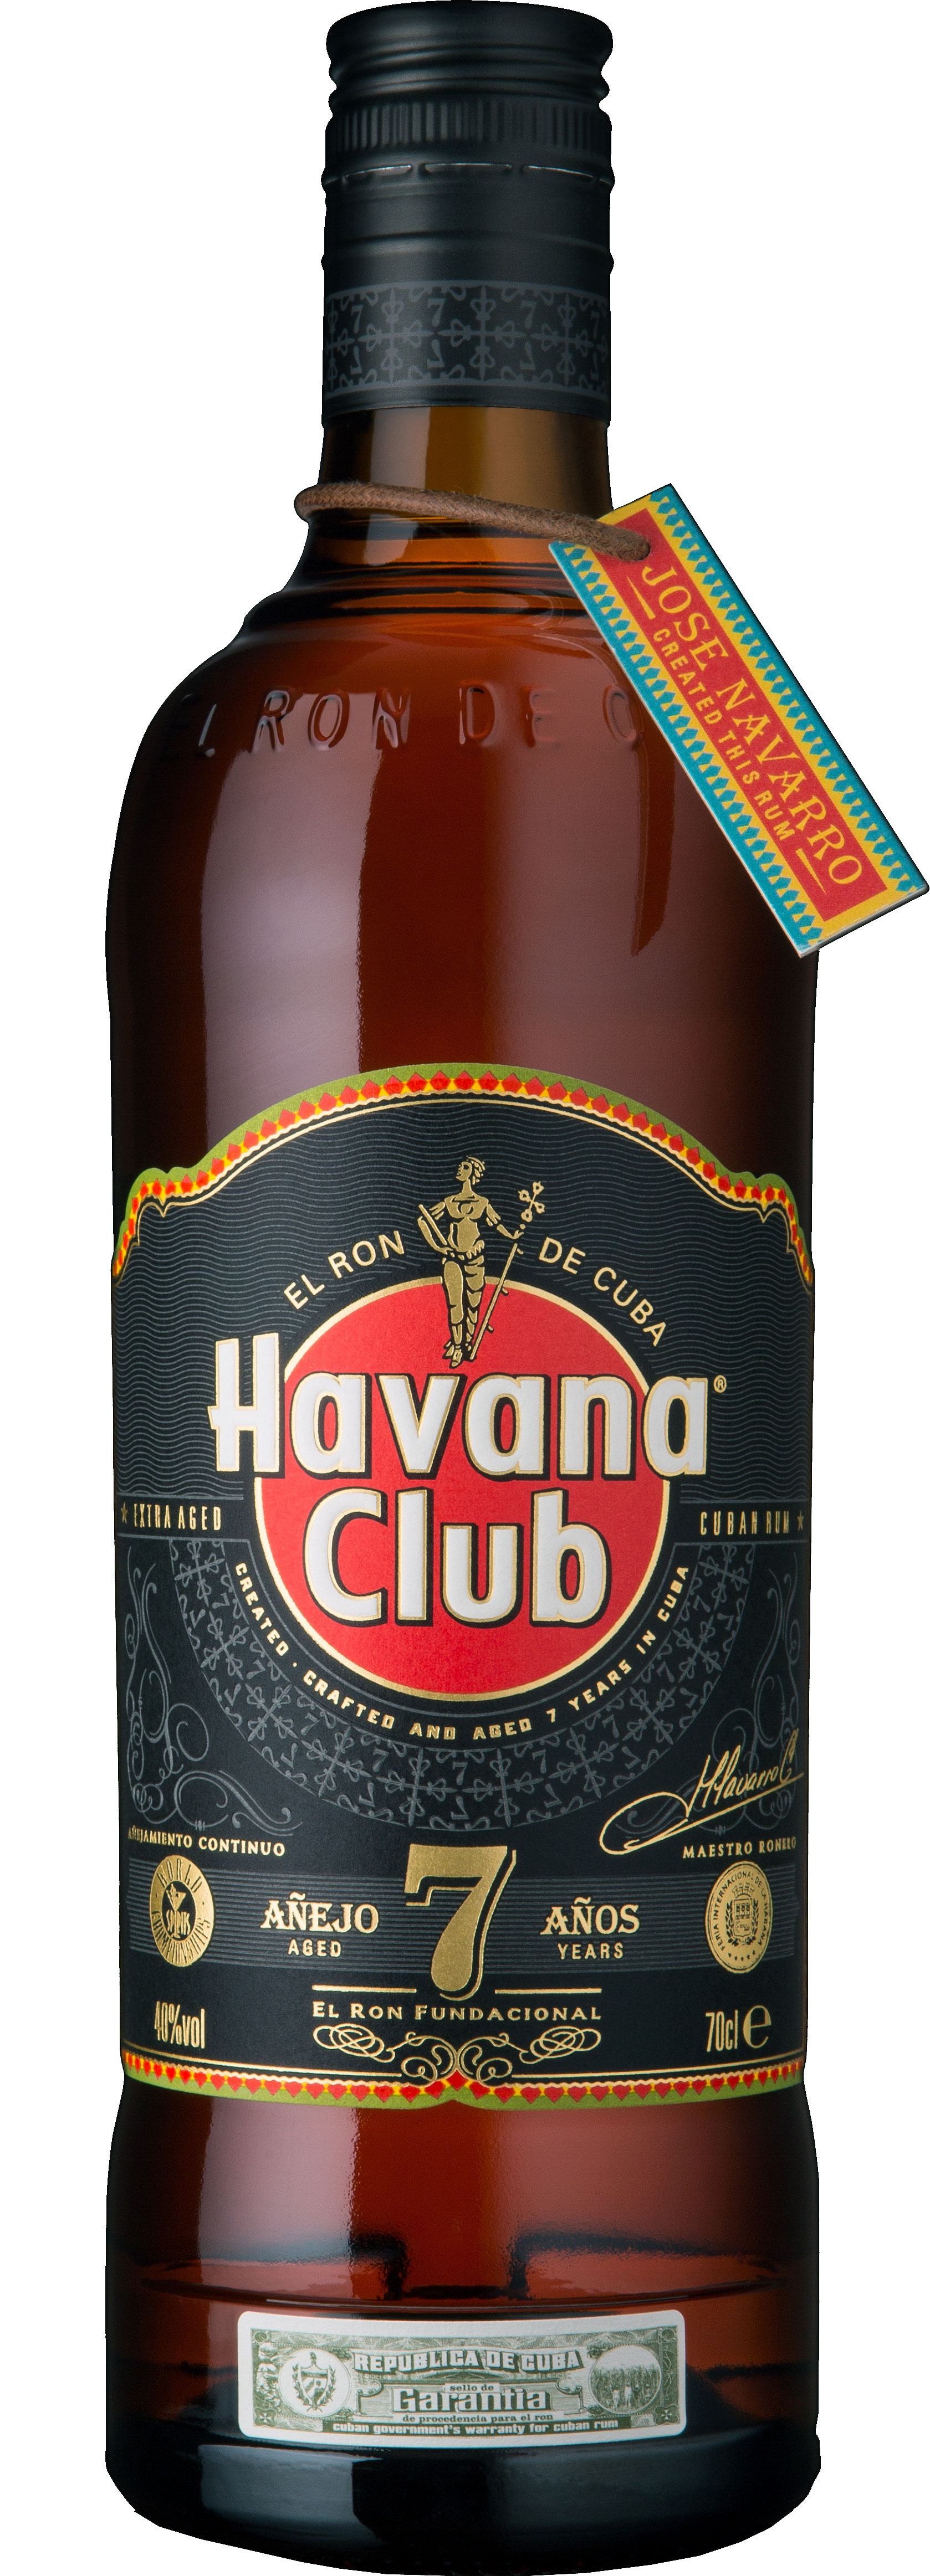 Havana Club - Anejo 7 Year Old 70cl Bottle